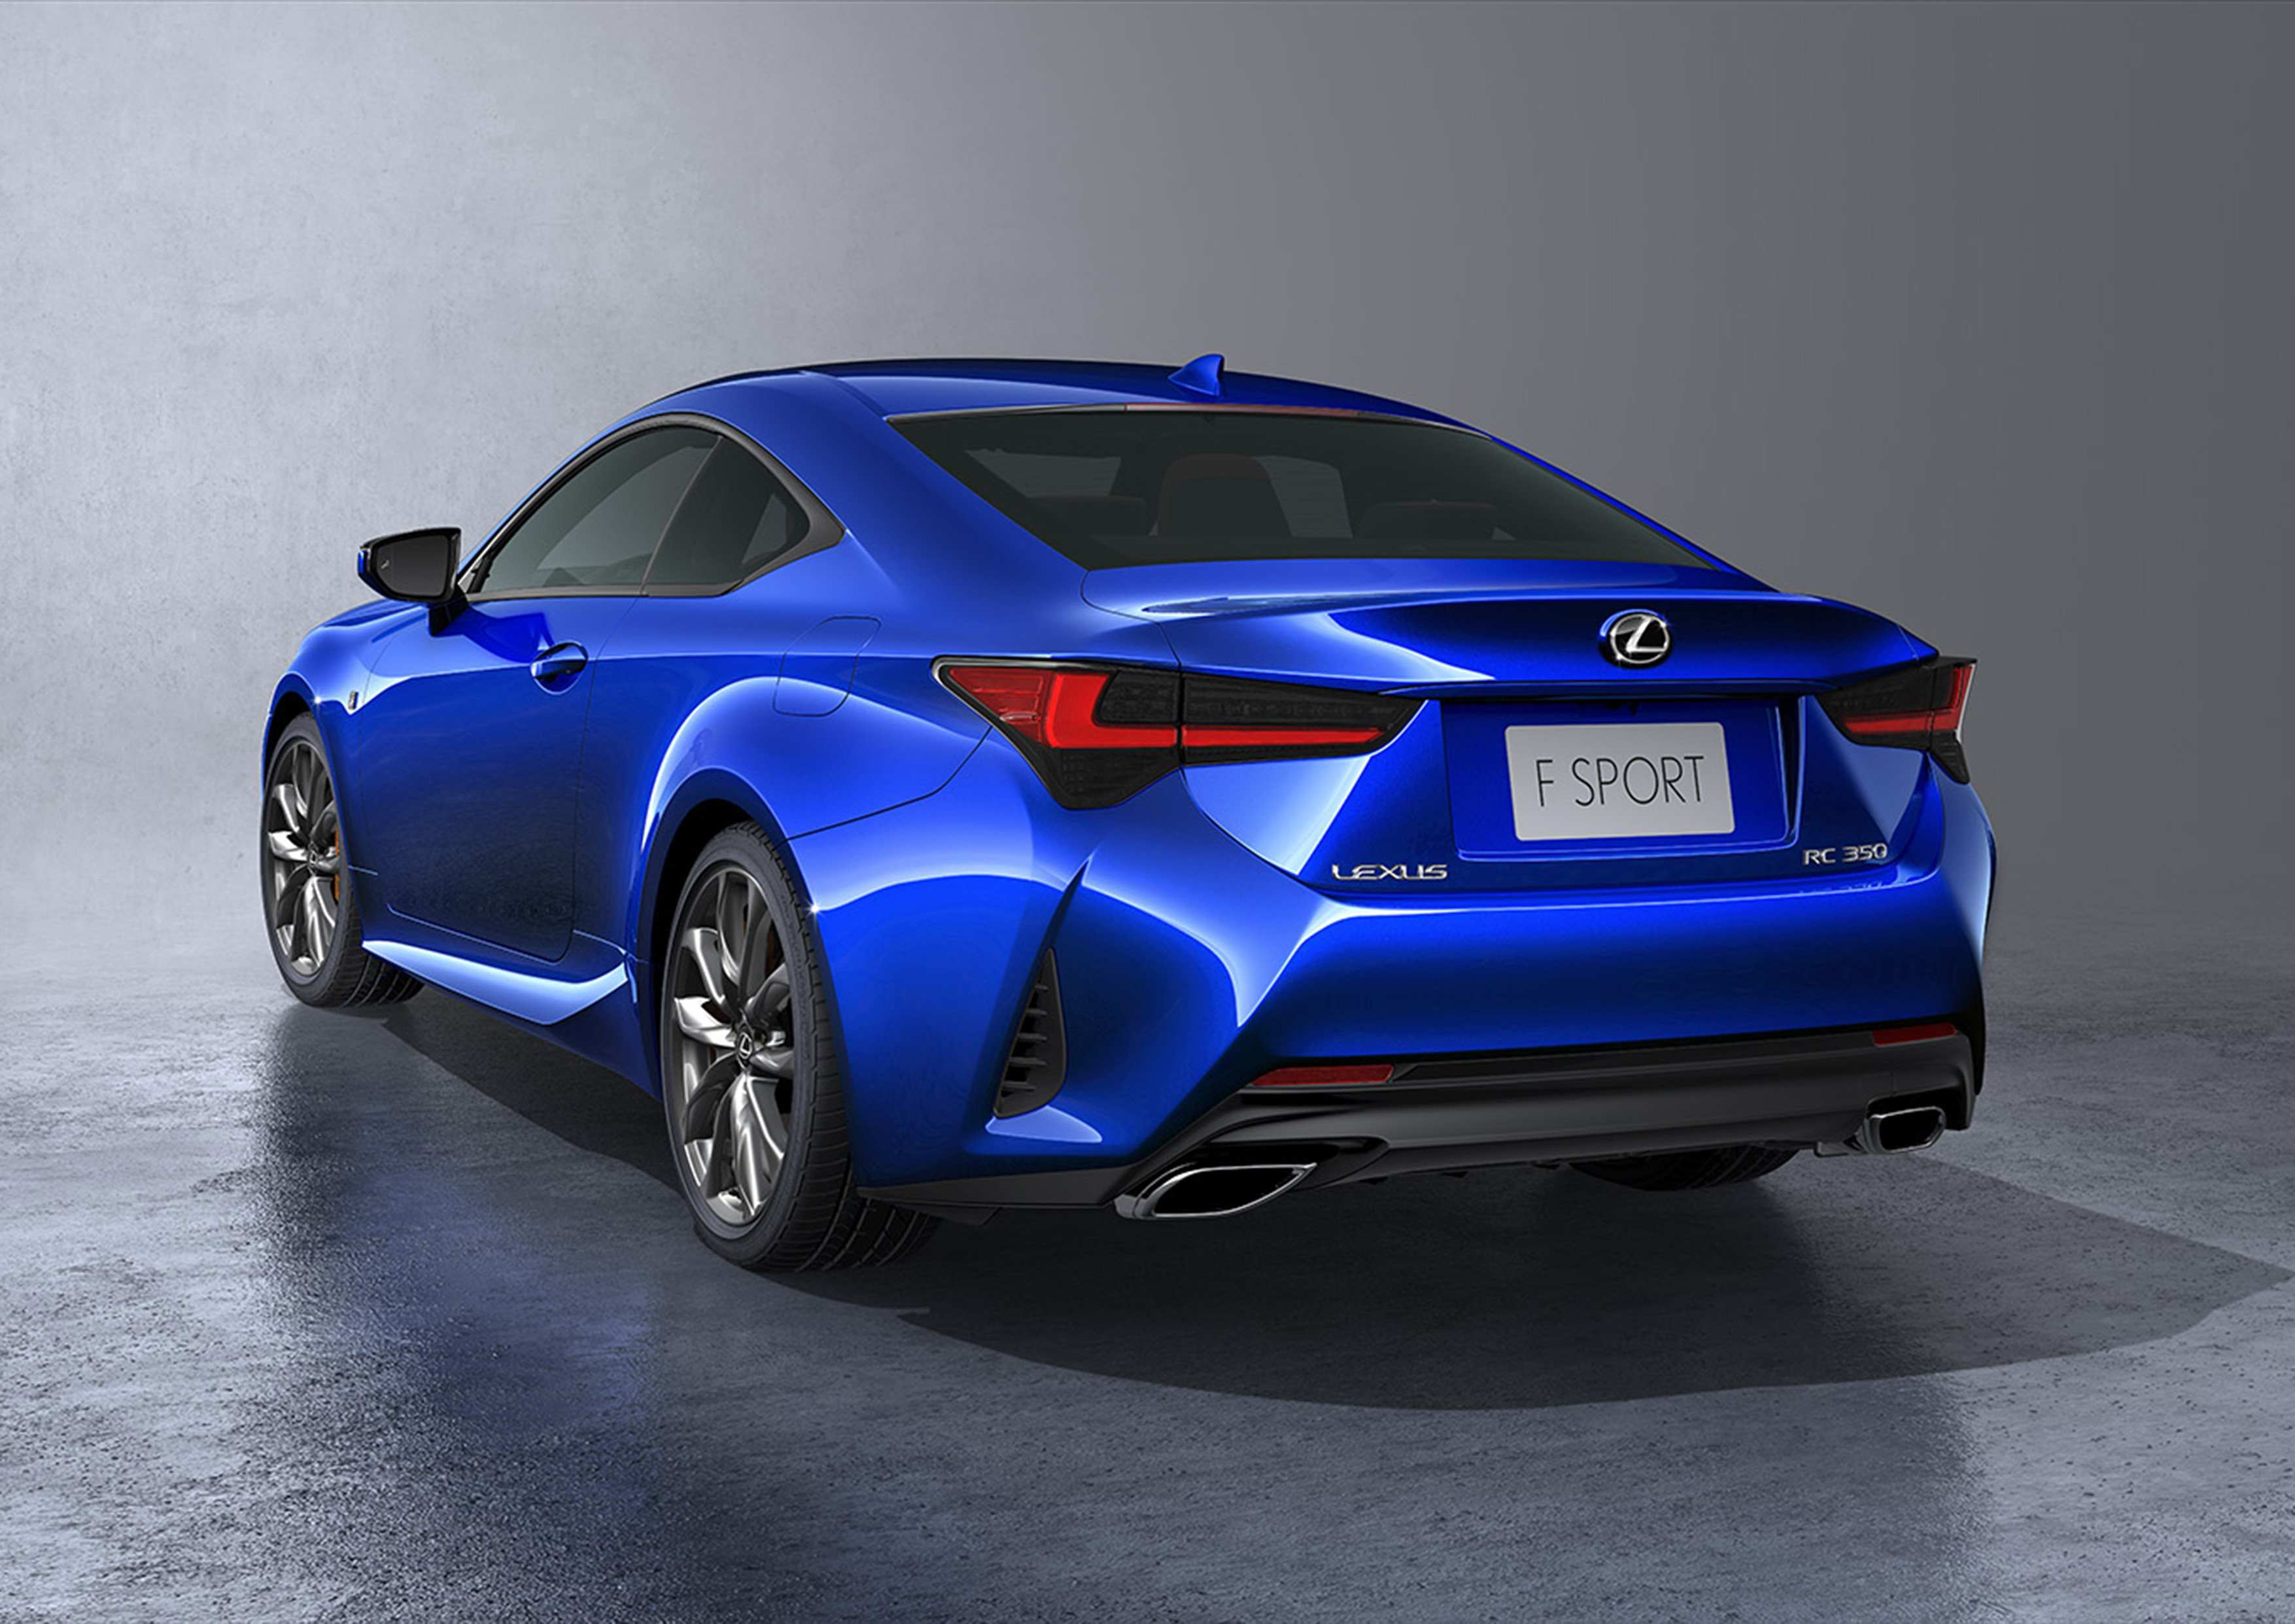 46 All New Lexus Is 350 F Sport 2020 Ratings